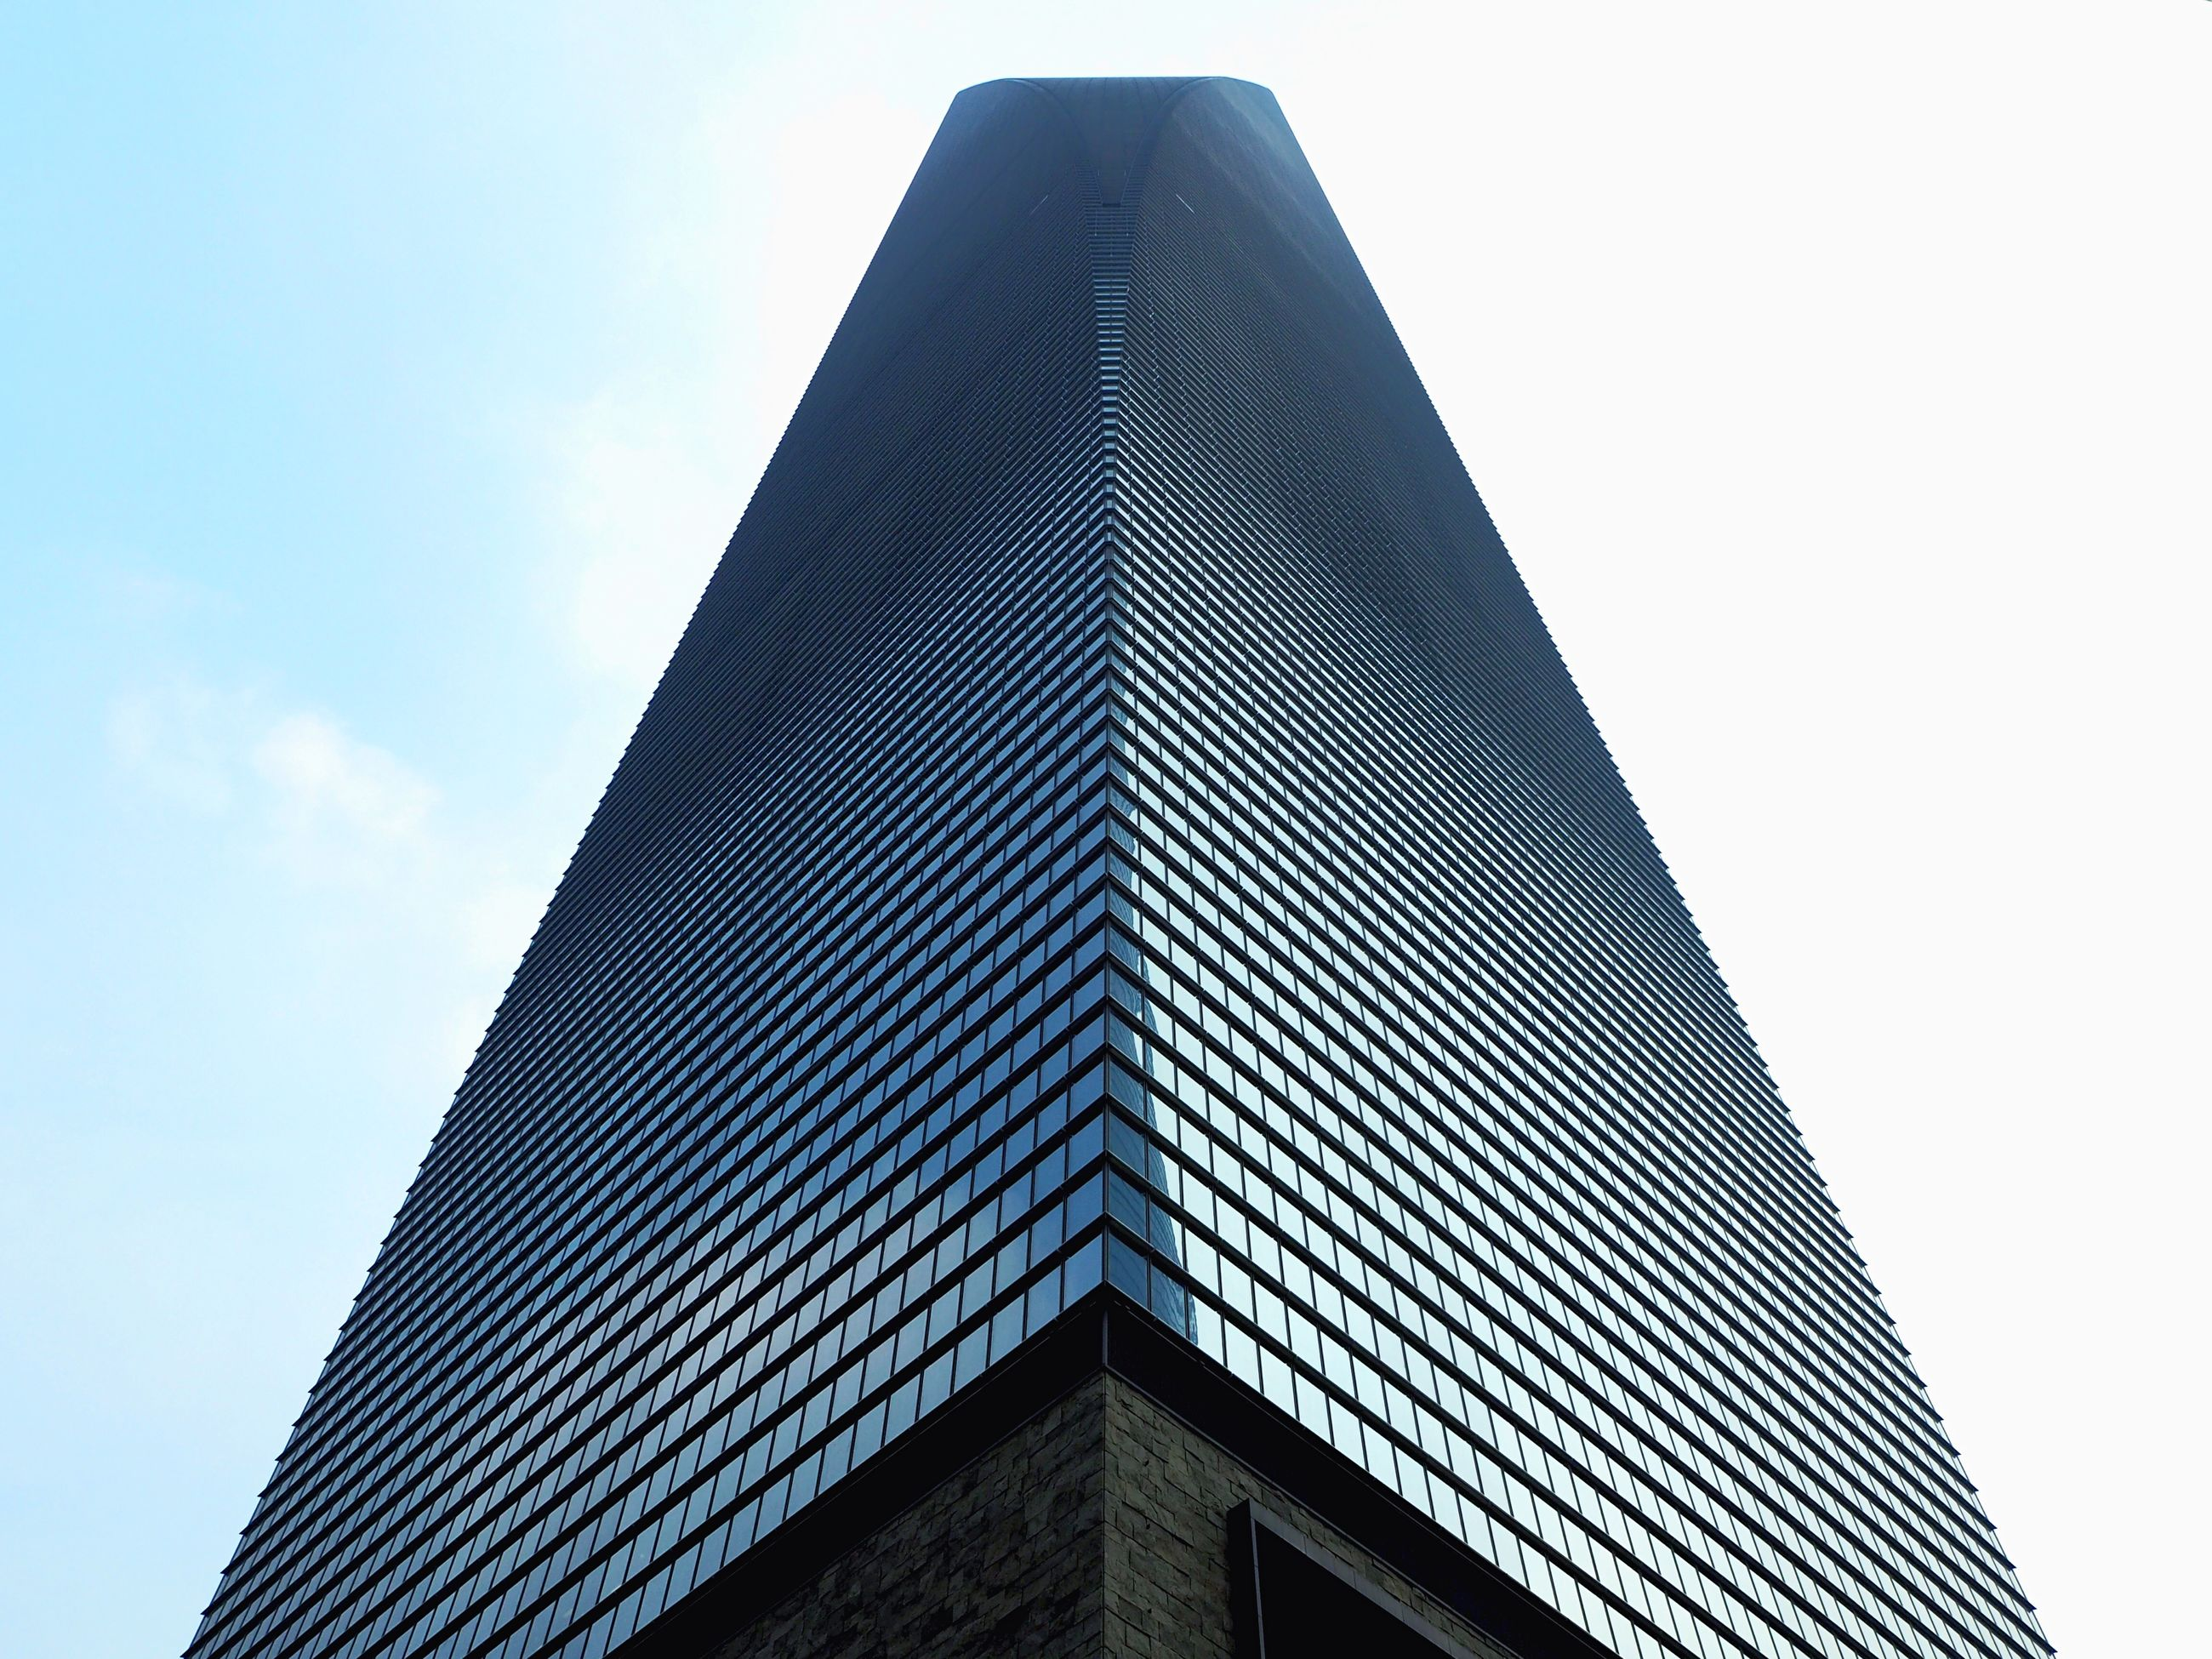 architecture, low angle view, building exterior, built structure, tall - high, tower, clear sky, city, skyscraper, sky, modern, office building, building, tall, day, high section, outdoors, no people, architectural feature, copy space